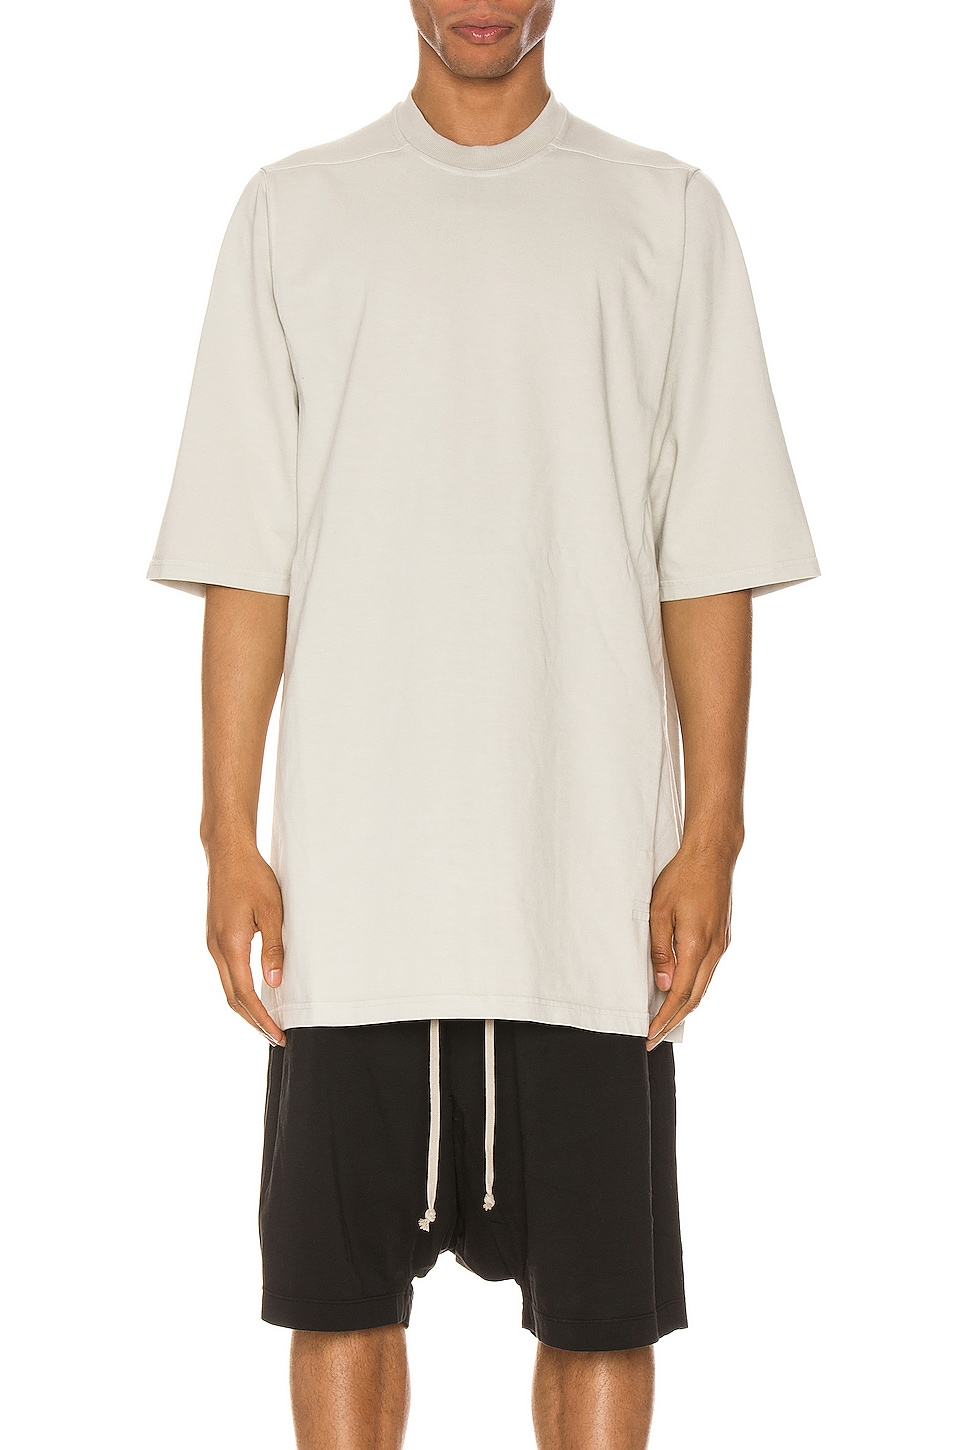 DRKSHDW by Rick Owens Jumbo Tee in Oyster